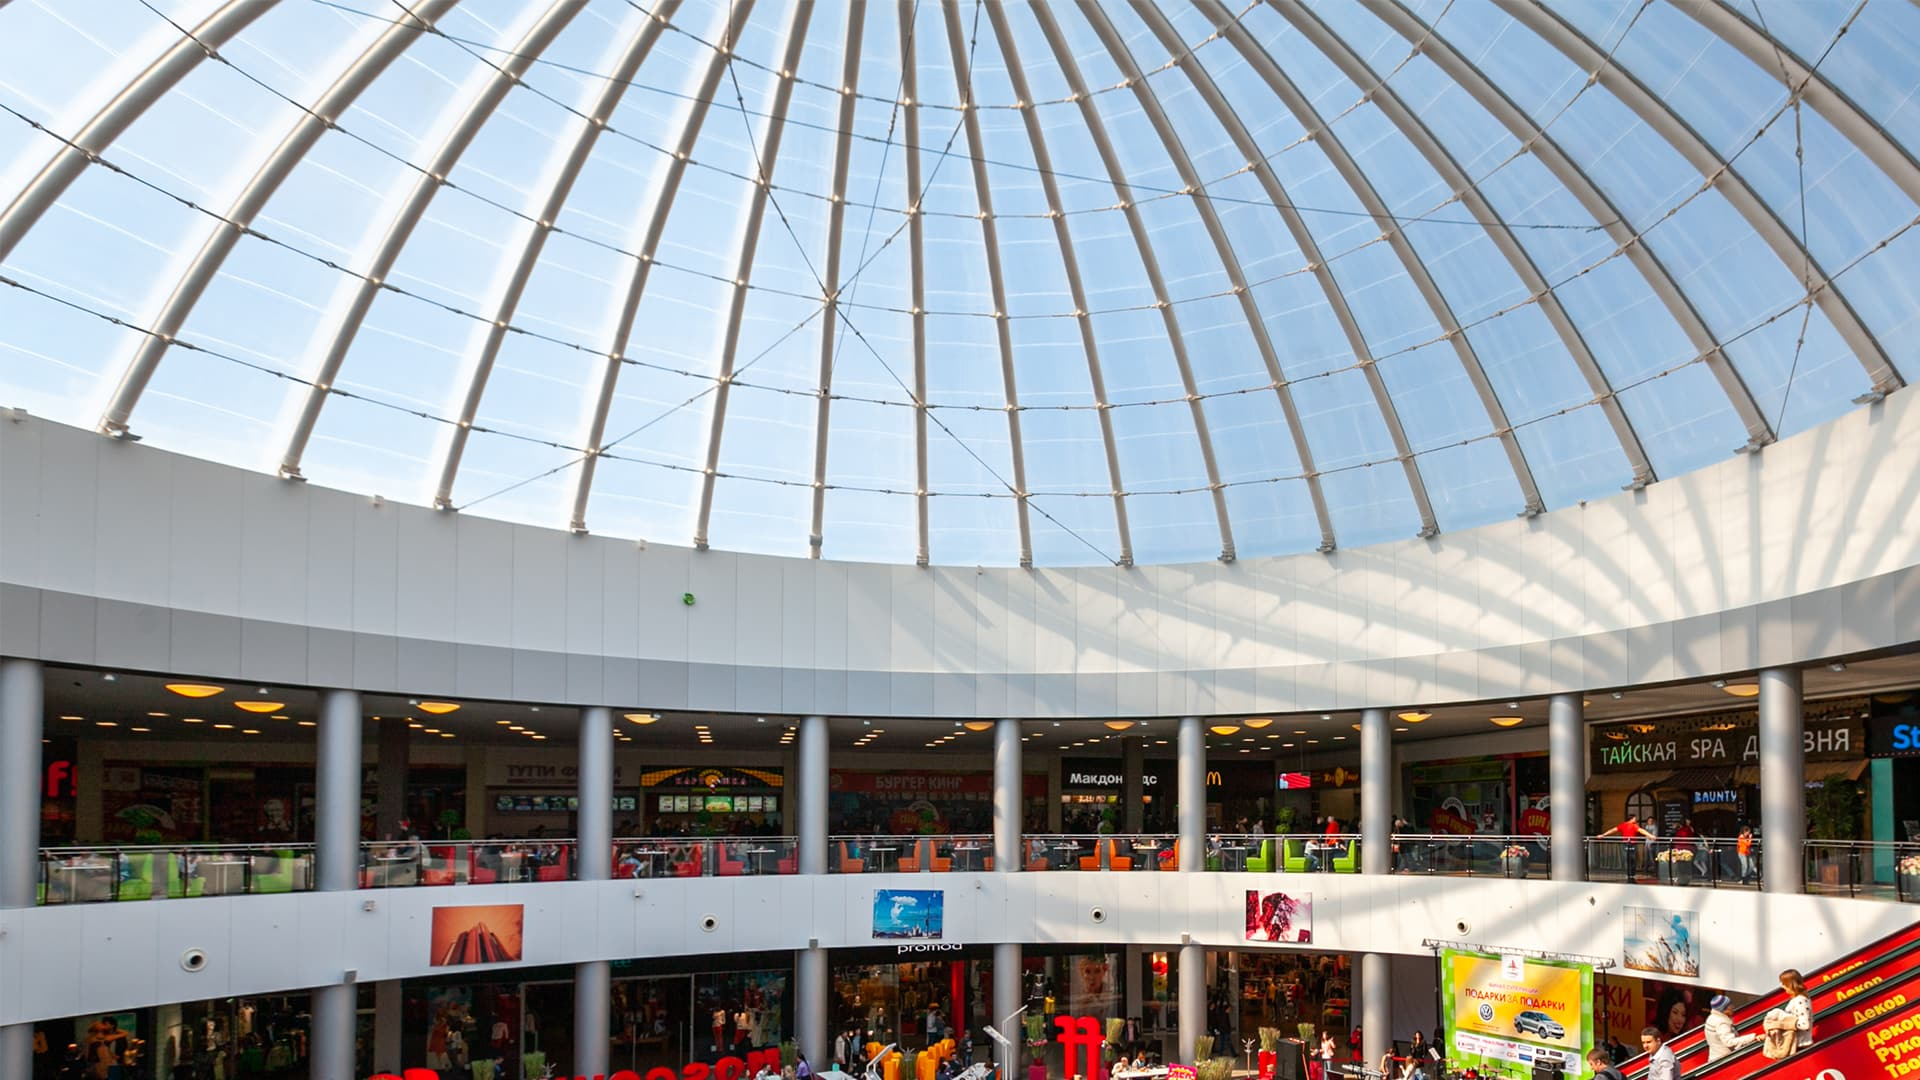 1,950 m² of Texlon® ETFE cushions span over three dome structures at City Park Grad shopping mall in Voronezh, Russia.